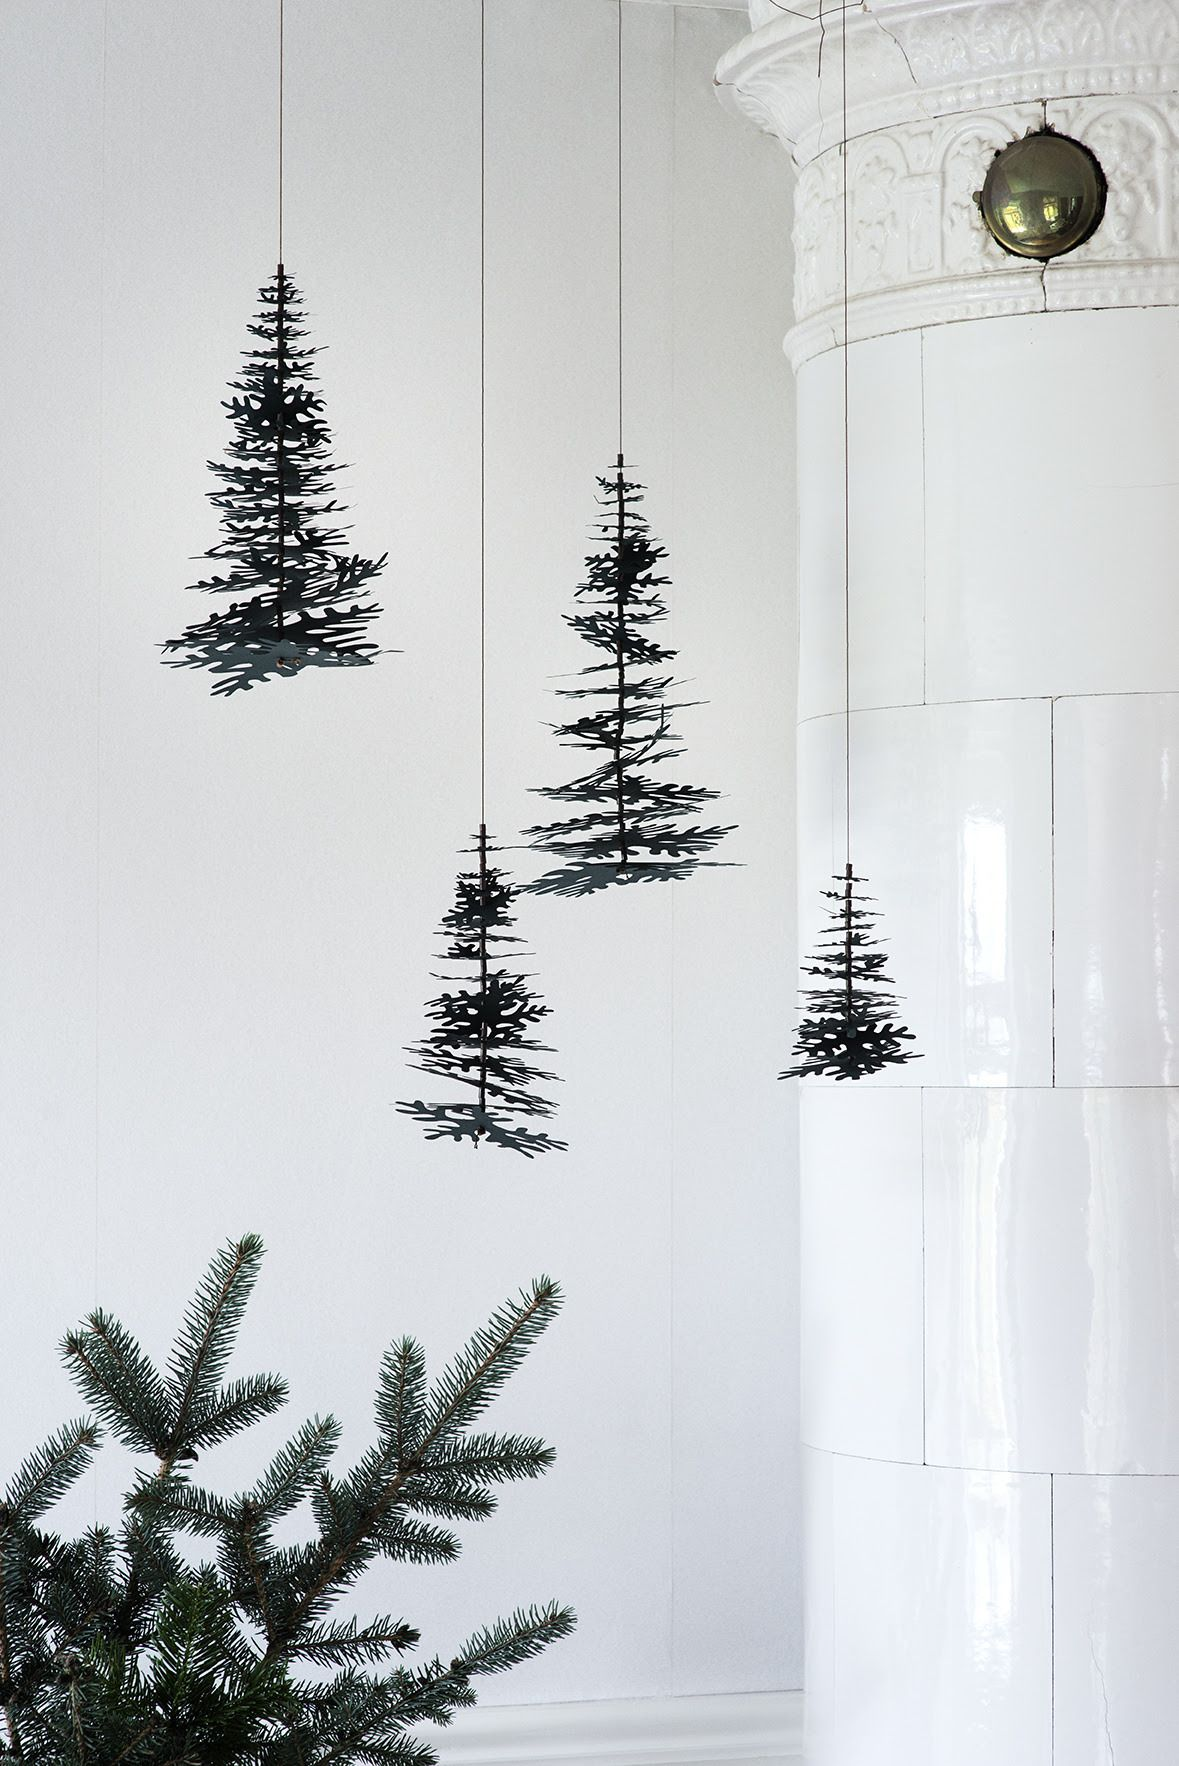 Hanging Christmas Decorations Diy.Hanging Trees Holiday Christmas Diy Christmas Nordic